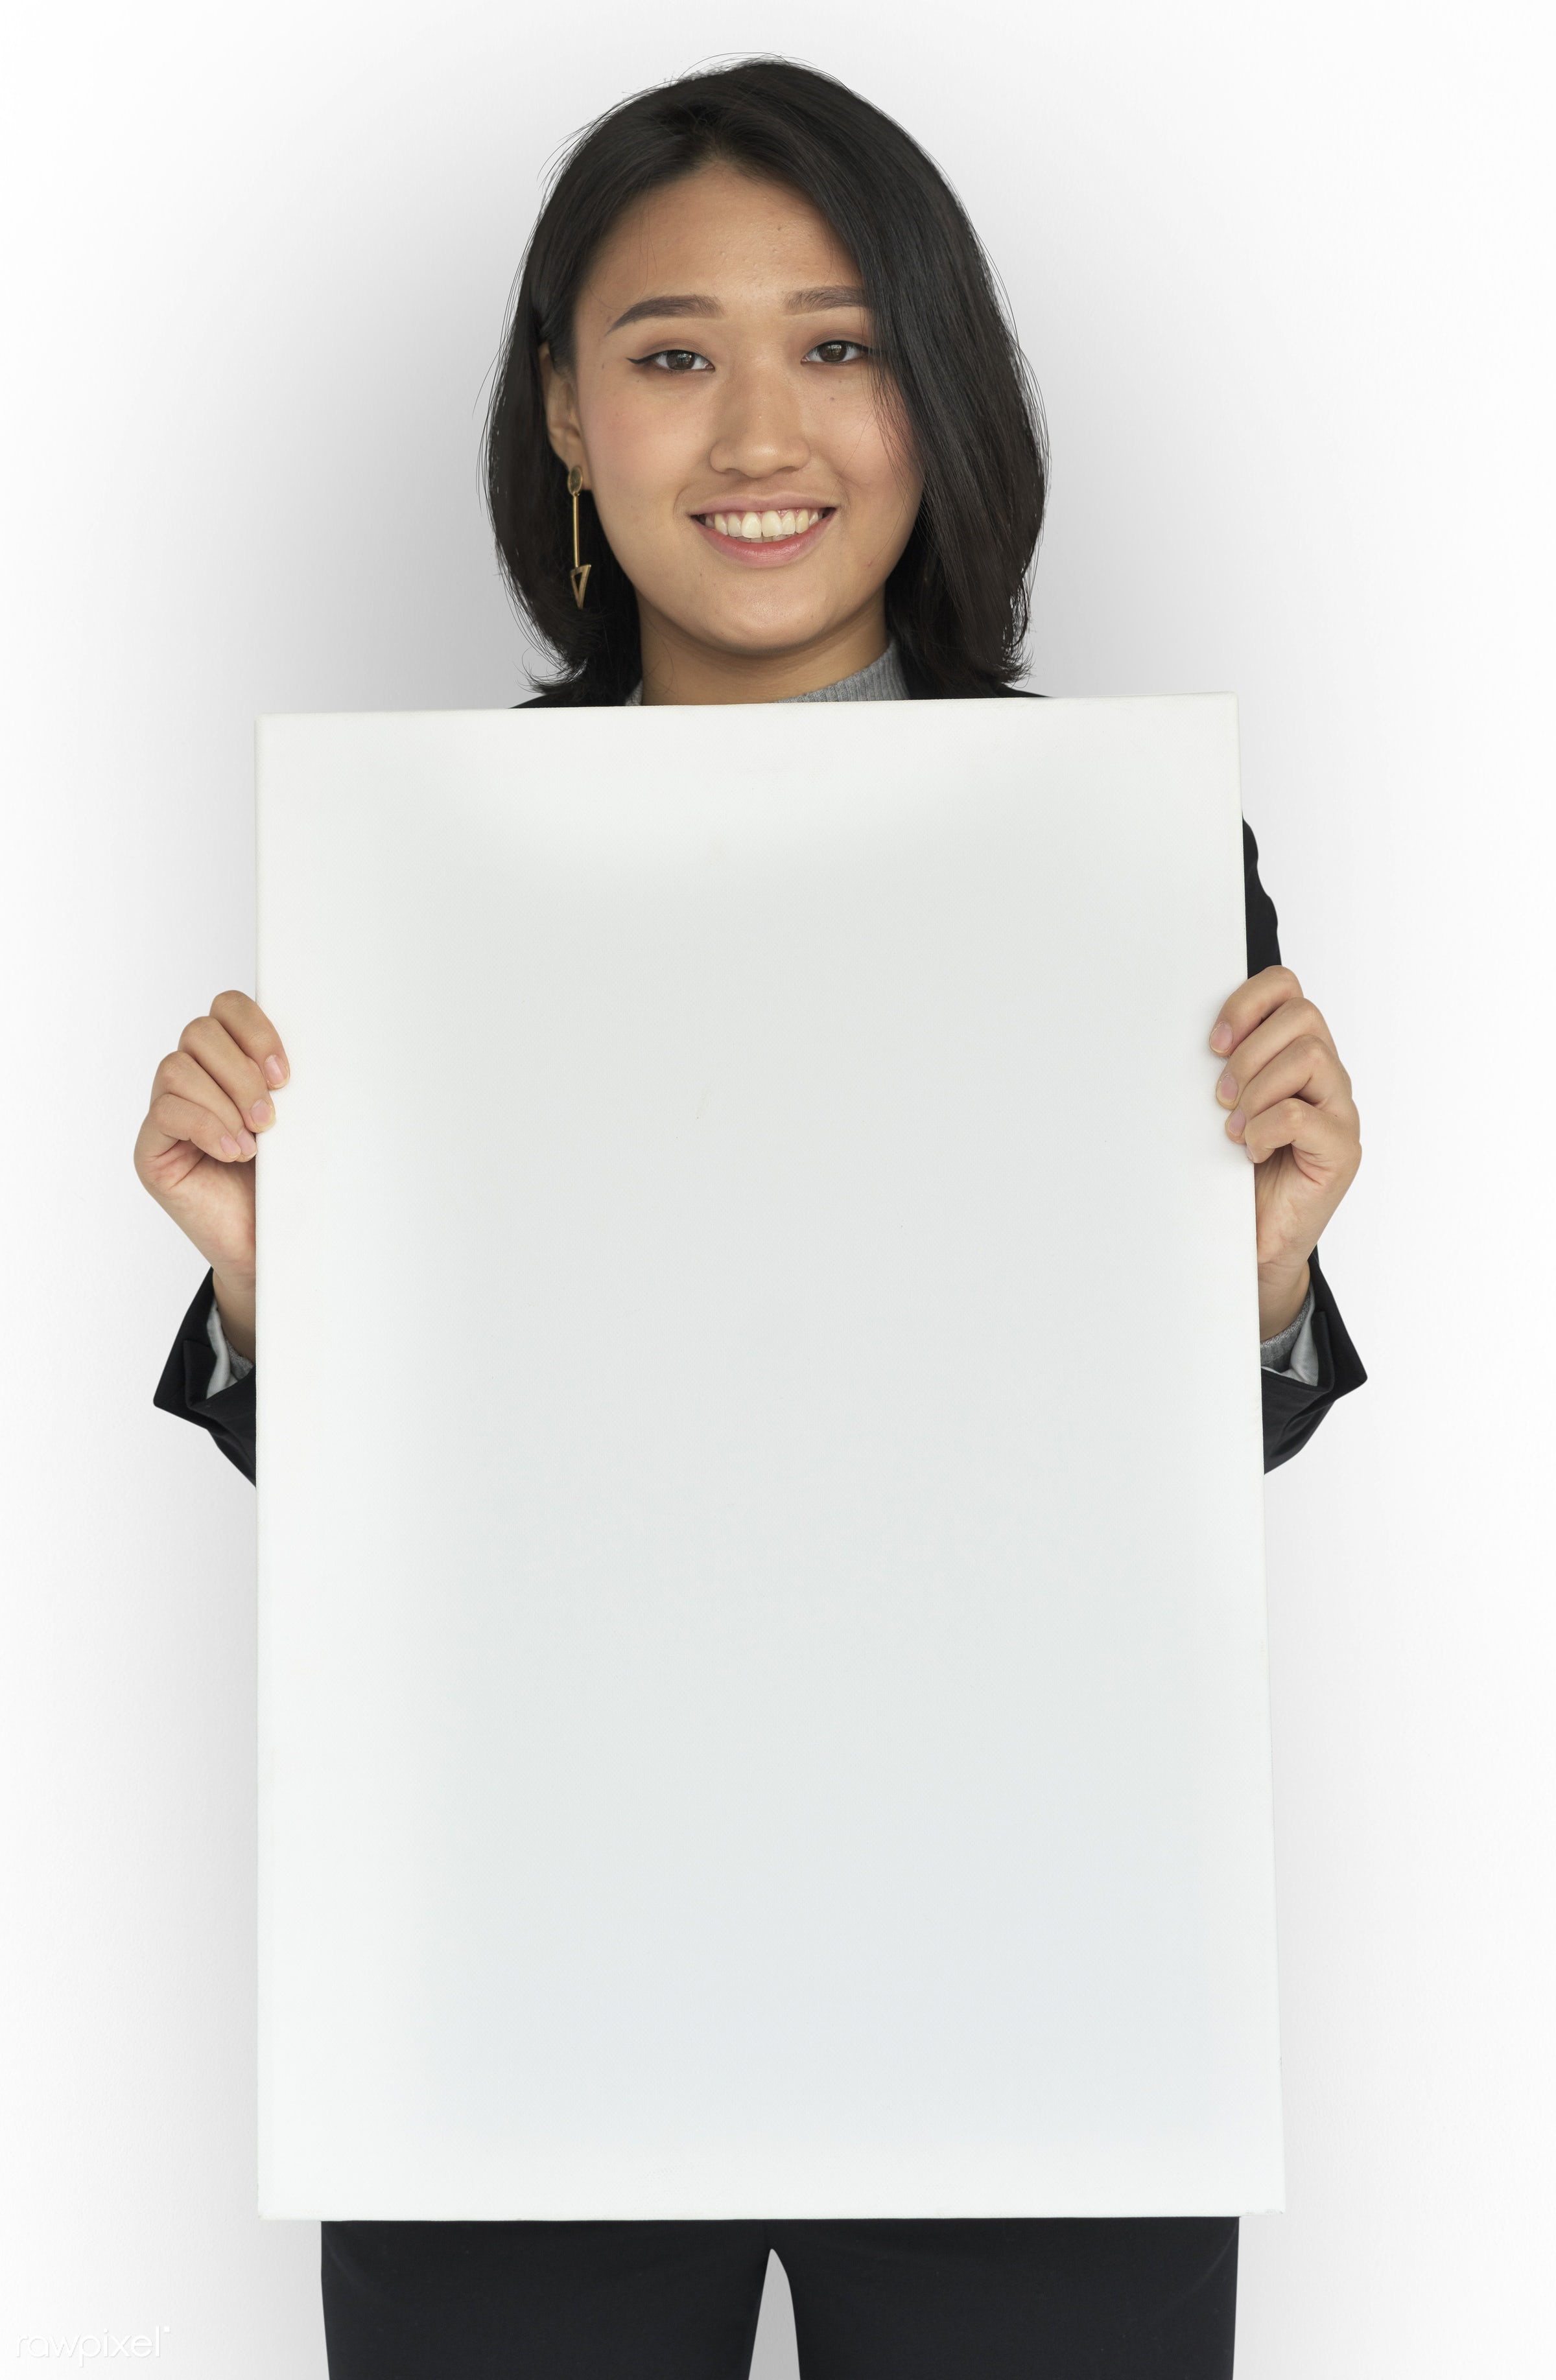 studio, expression, person, people, asian, placard, woman, smile, cheerful, smiling, isolated, white, happiness, asian woman...